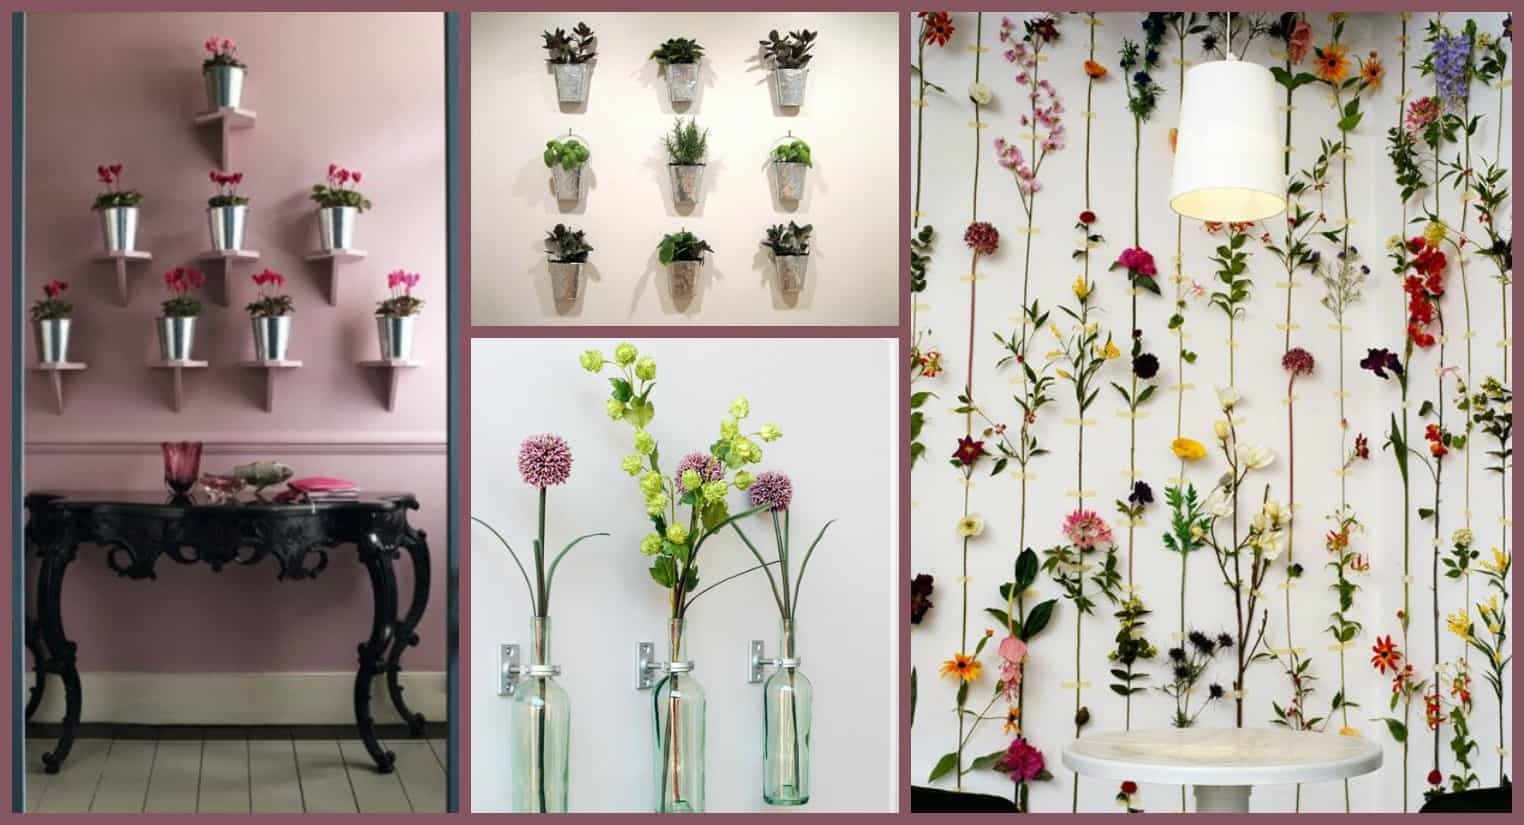 Diy 10 idee su come decorare una parete di casa for Ufficio fai da te